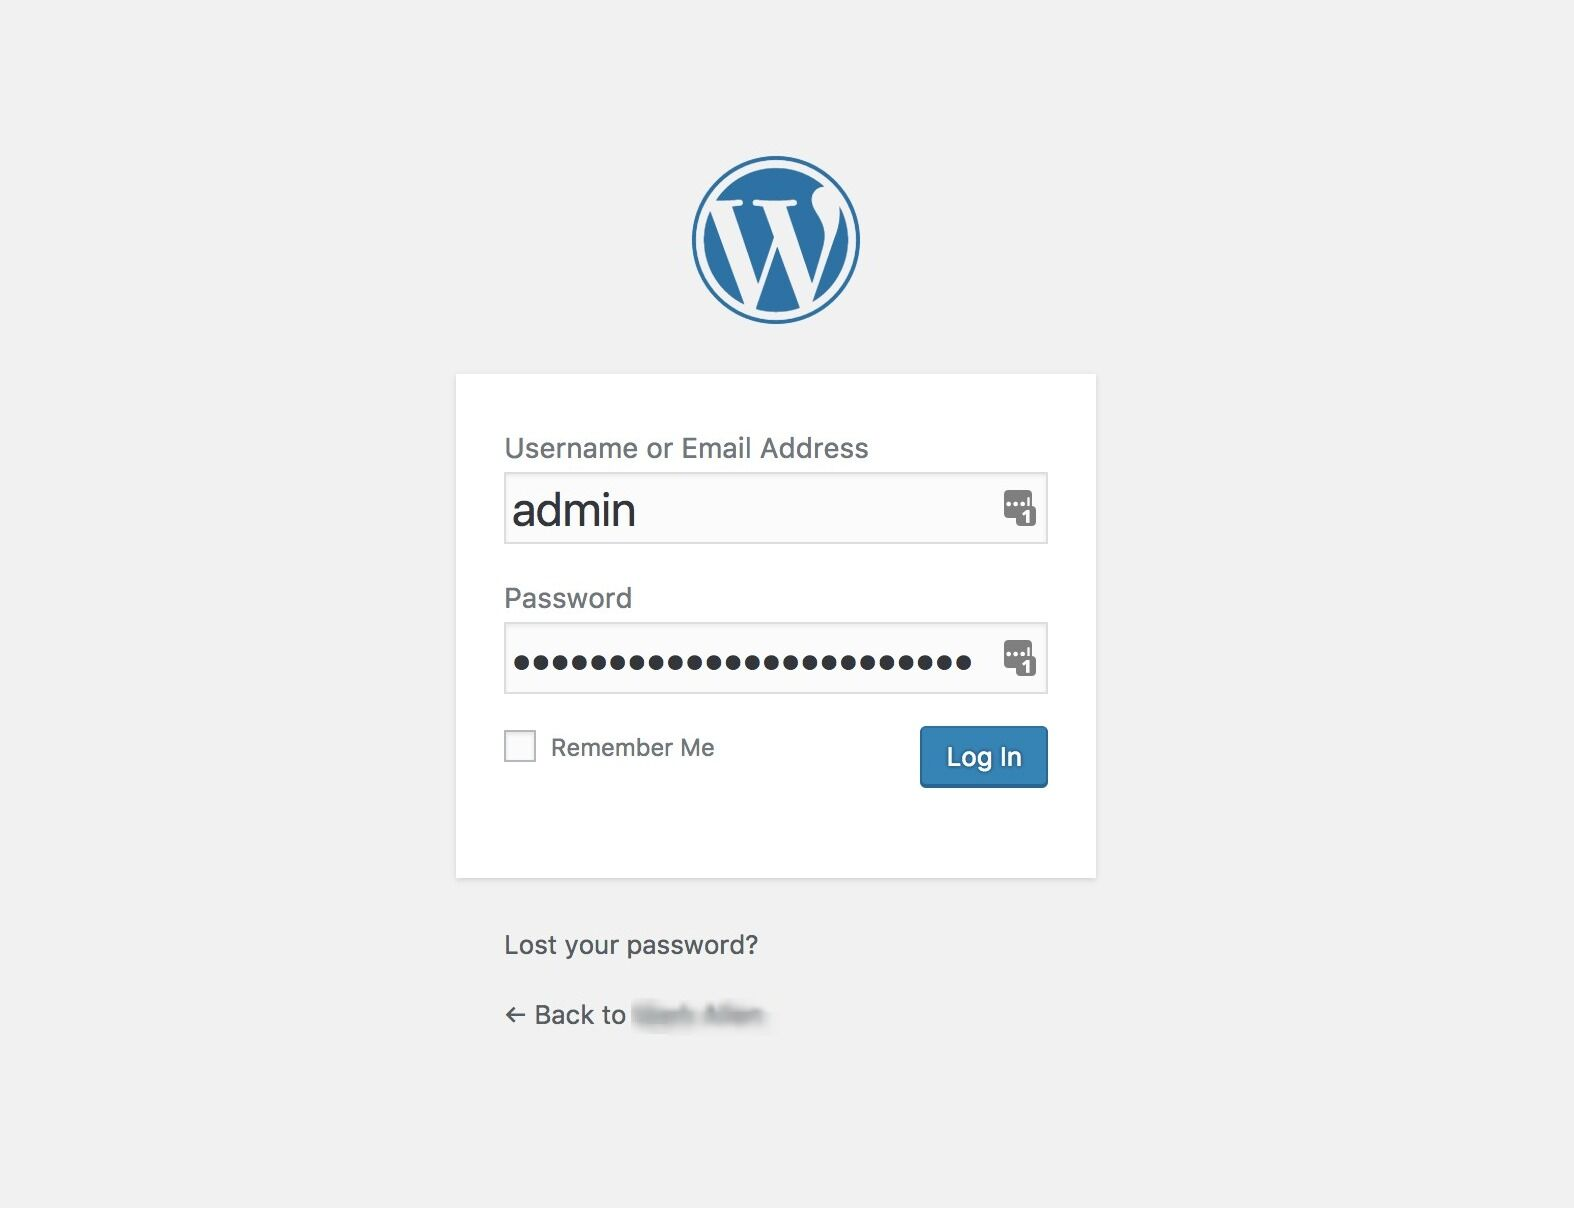 Day 3 from 7 Days of wordpress, Logging into WordPress